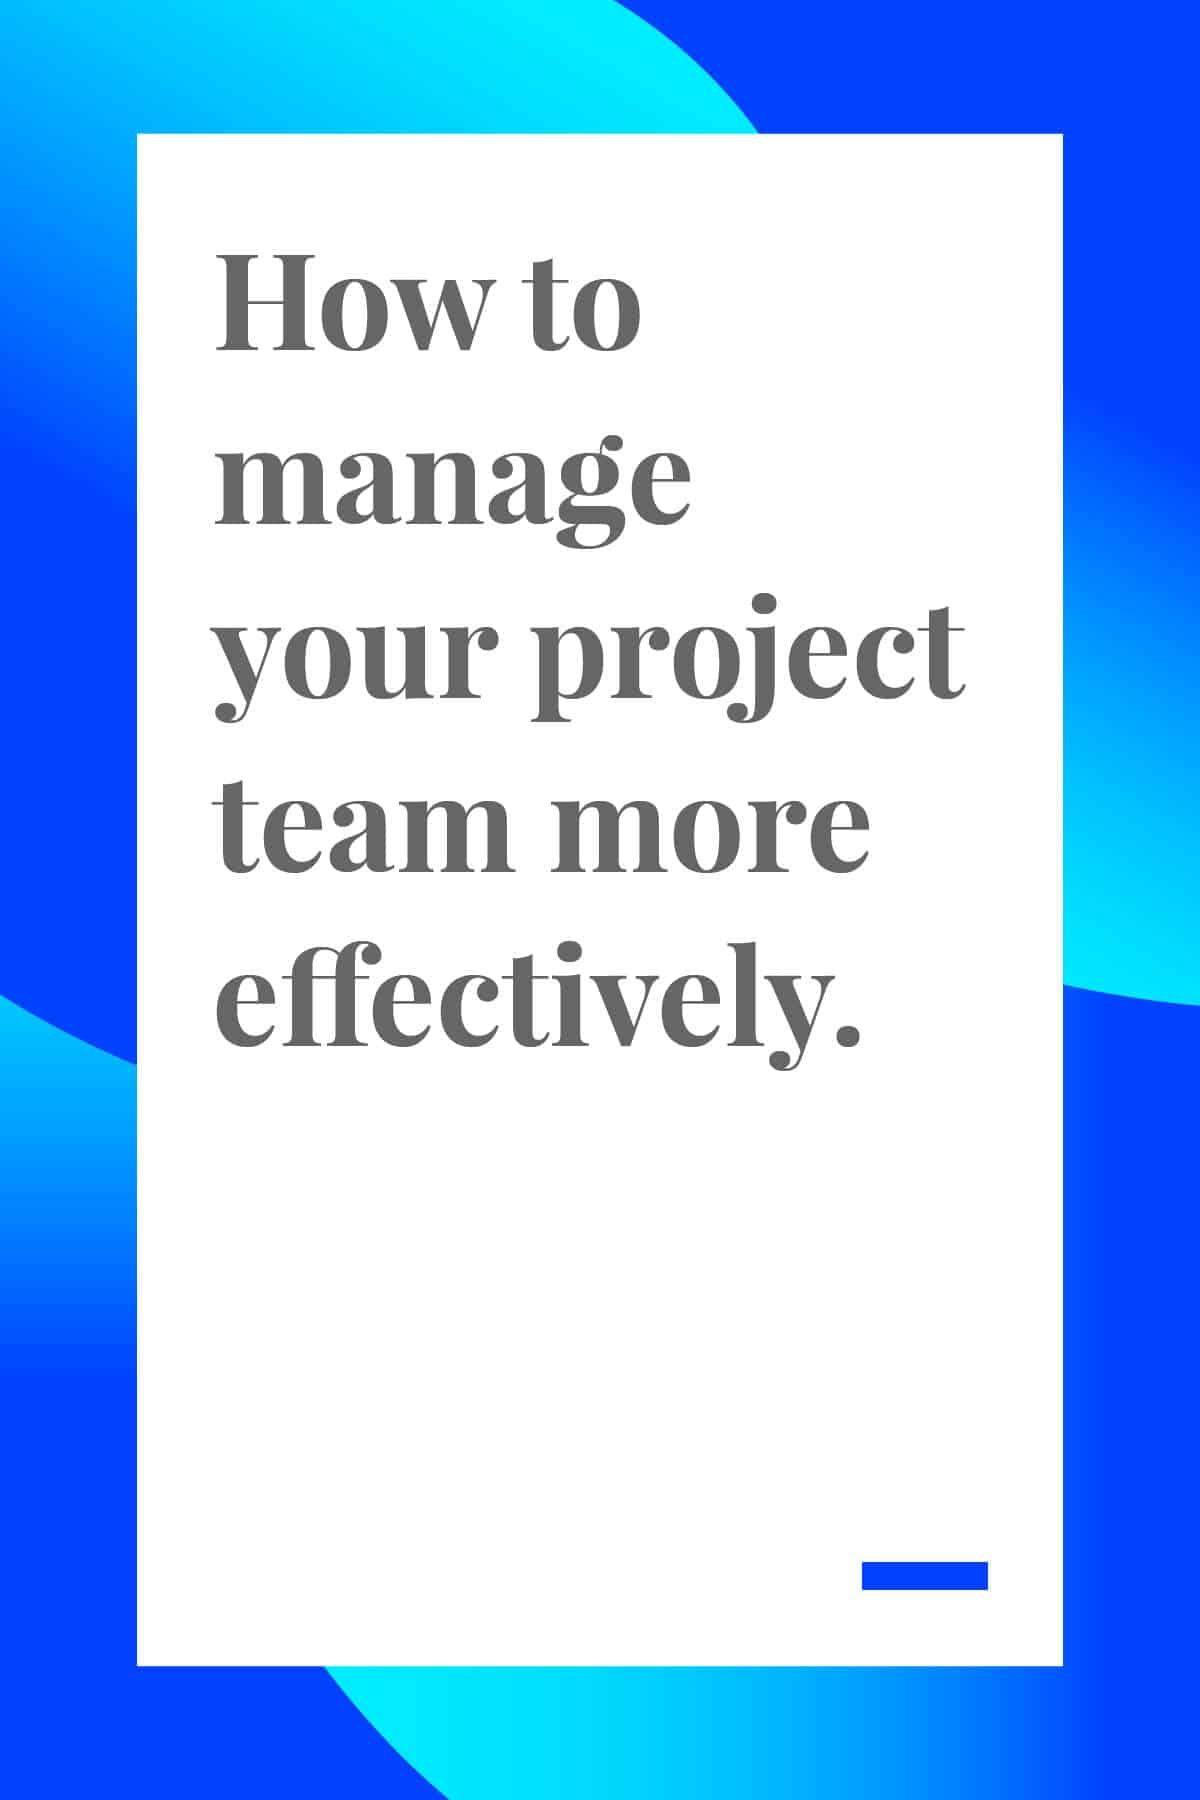 These three management hacks will help you manage your project team more effectively so you can finish your project on time and on budget, every time. #projectmanagement